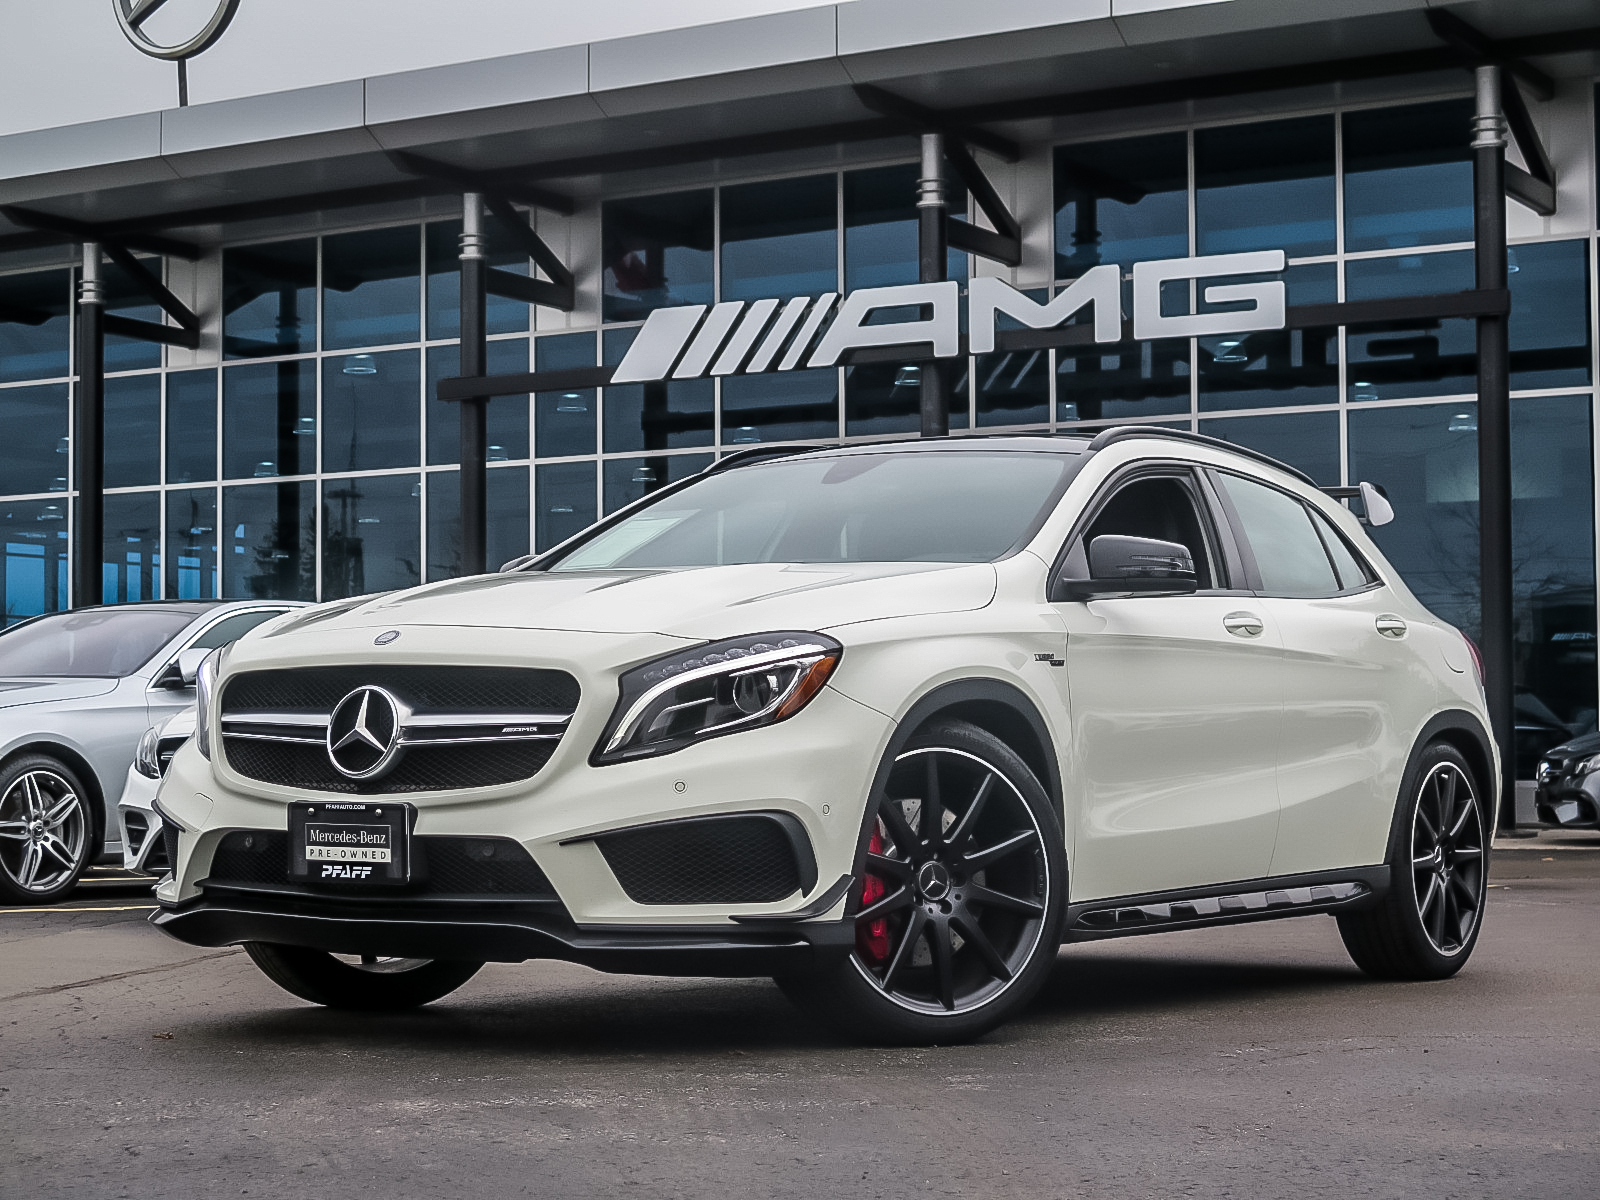 Certified Pre-Owned 2017 Mercedes-Benz GLA45 AMG 4MATIC SUV